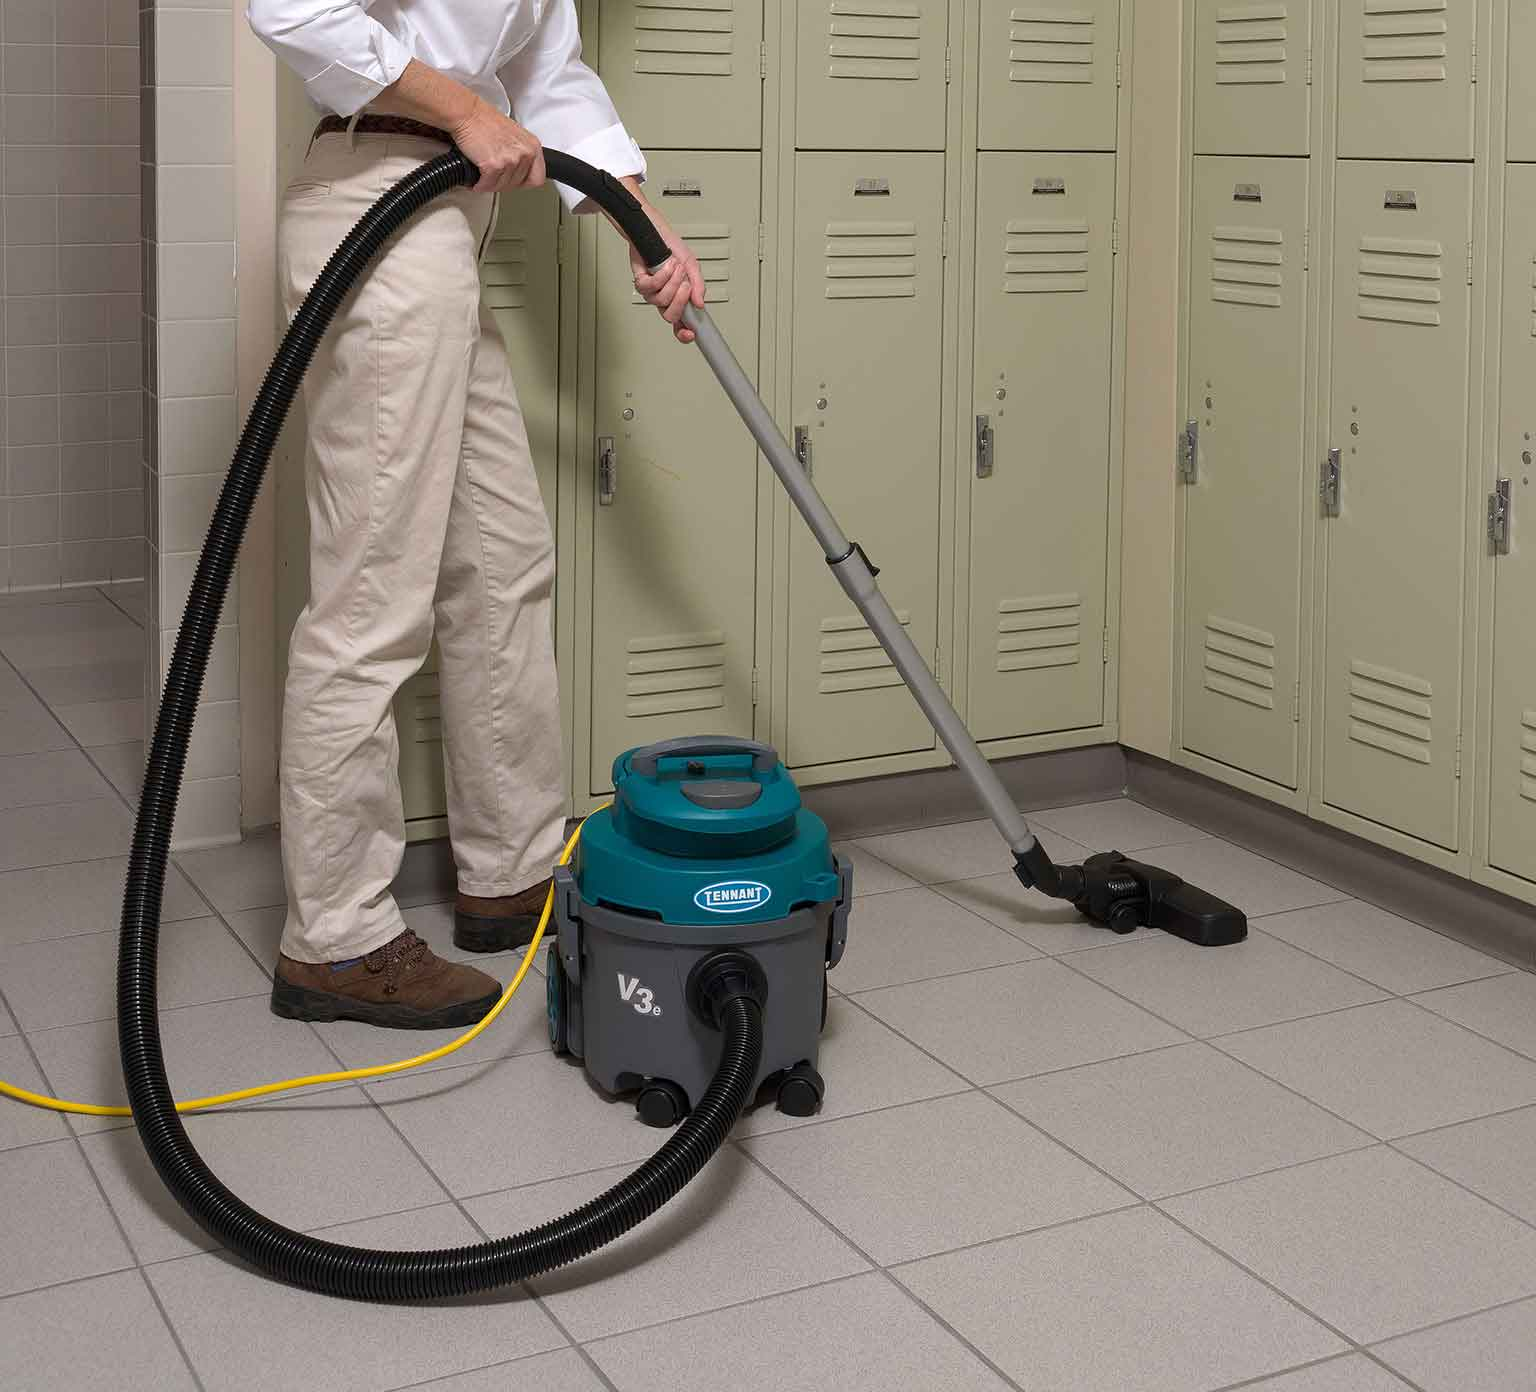 V3e Dry Canister Vacuum cleaning a locker room.